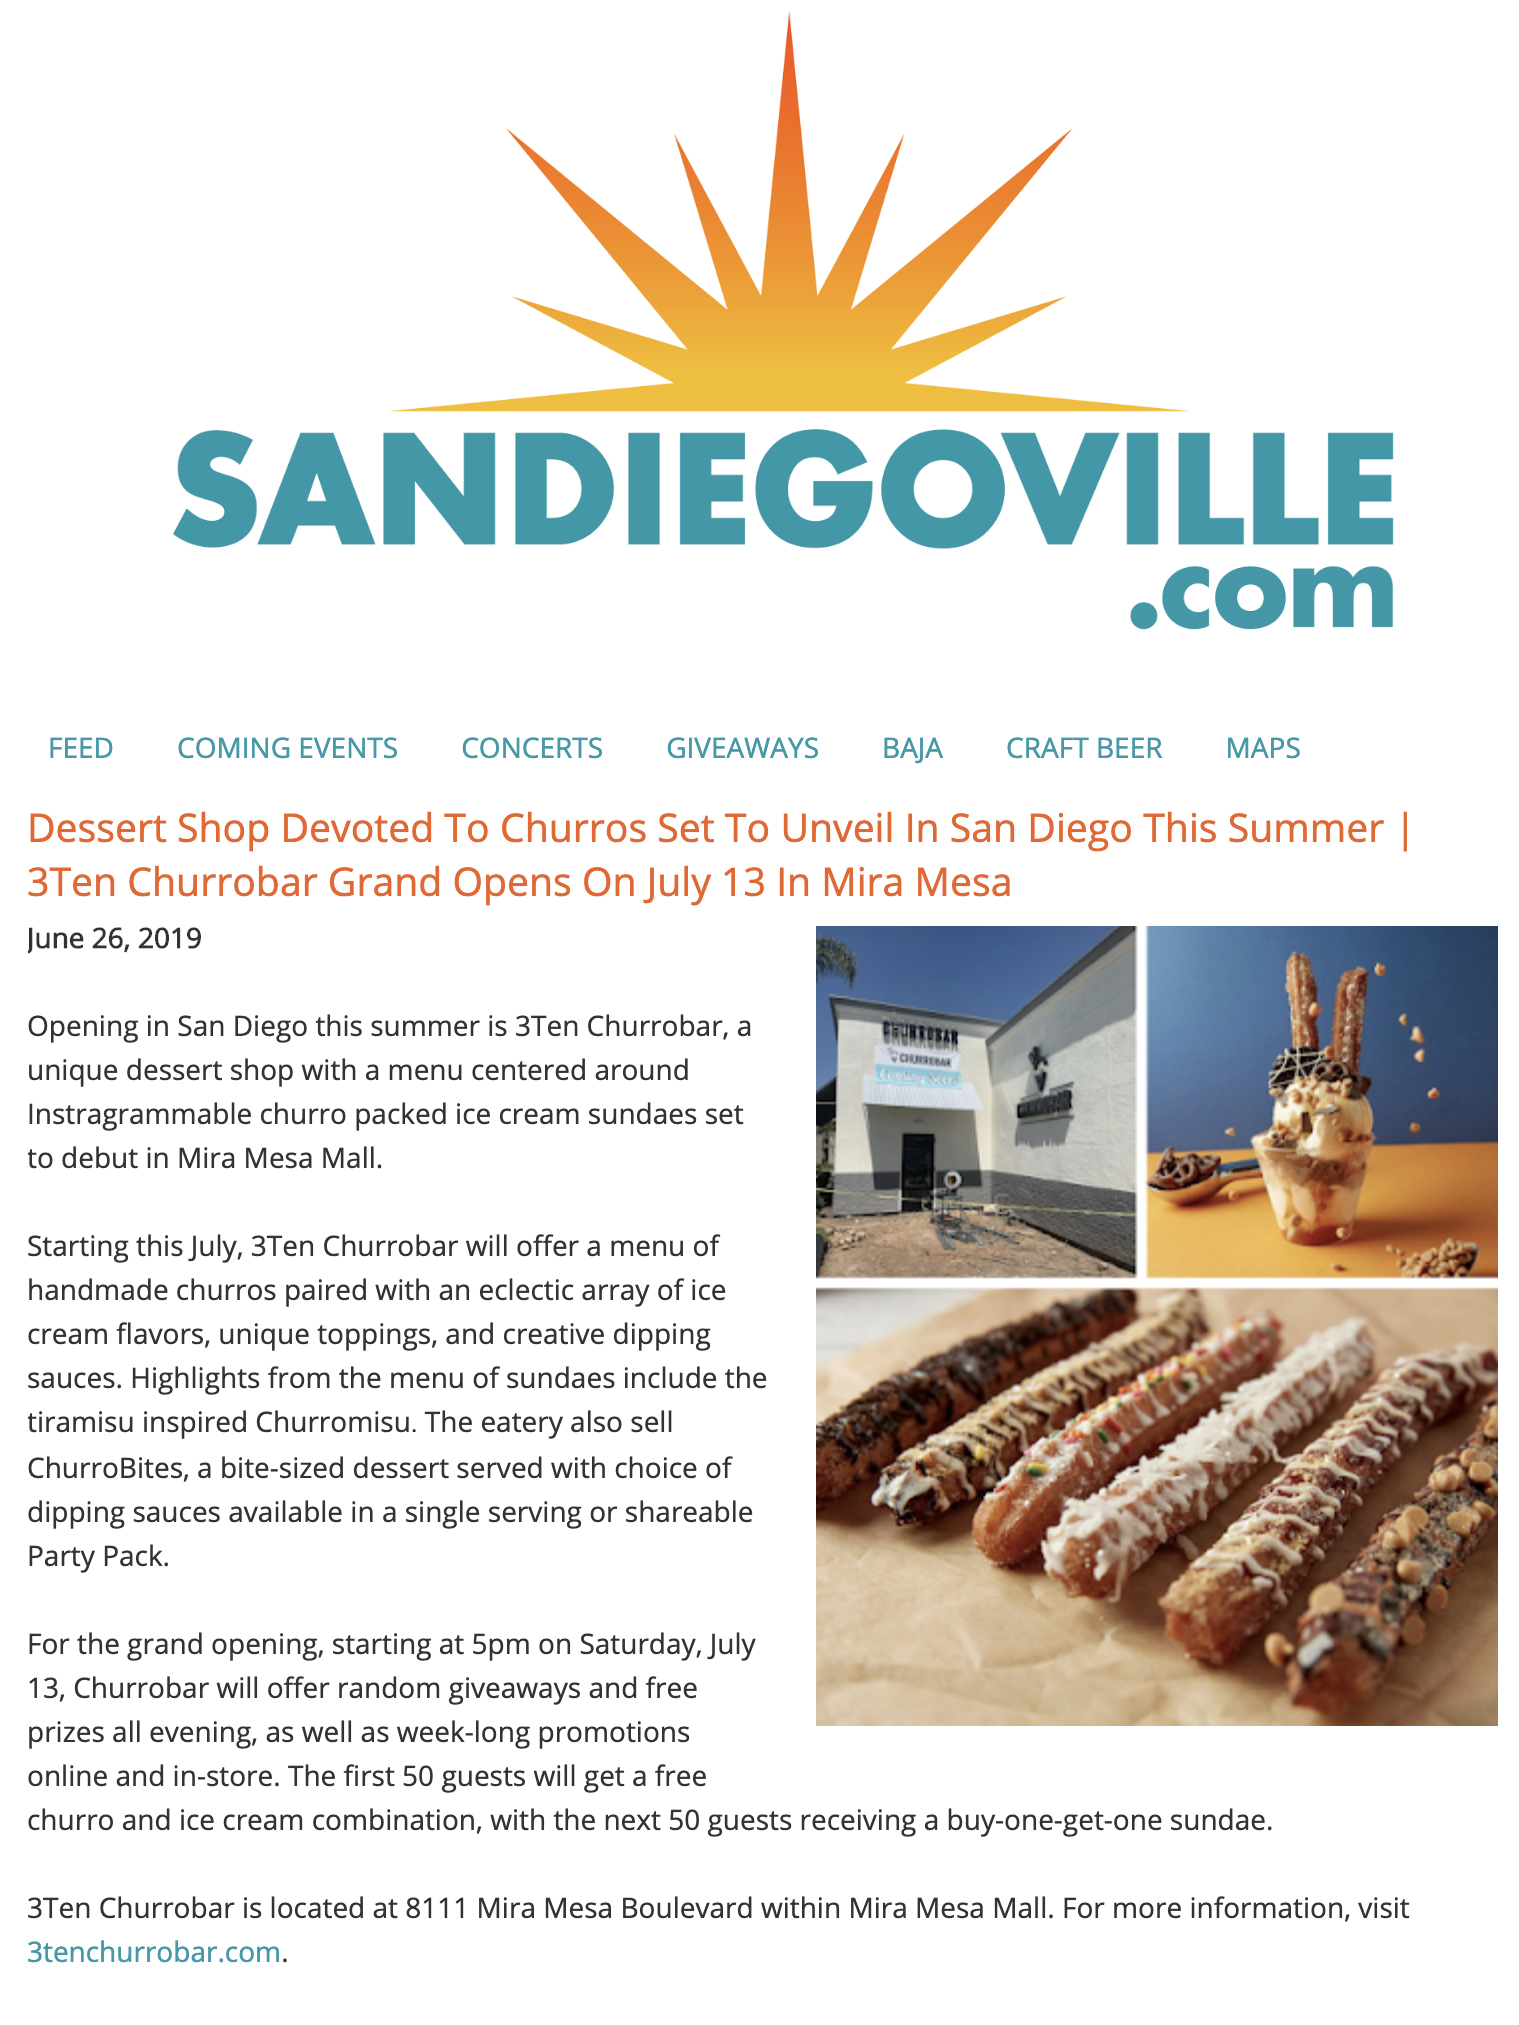 SANDIEGOVILLE.COM - DESERT SHOP DEVOTED TO CHURROS SET TO UNVEIL IN SAN DIEGO THIS SUMMER | 3TEN CHURROBAR GRAND OPENS ON JULY 13 IN MIRA MESA